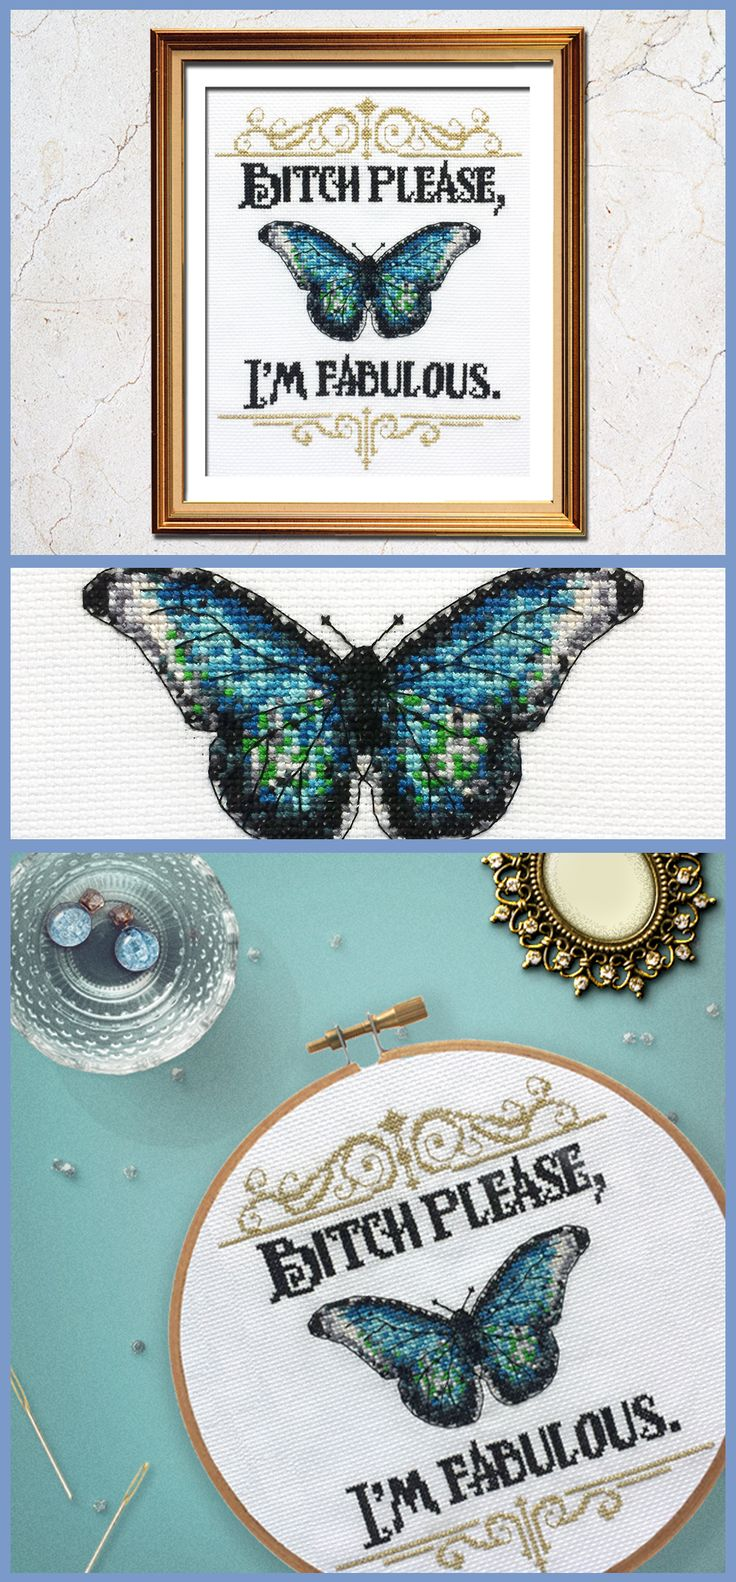 Check out this beautiful butterfly cross stitch! Such a funny cross stitch pattern.